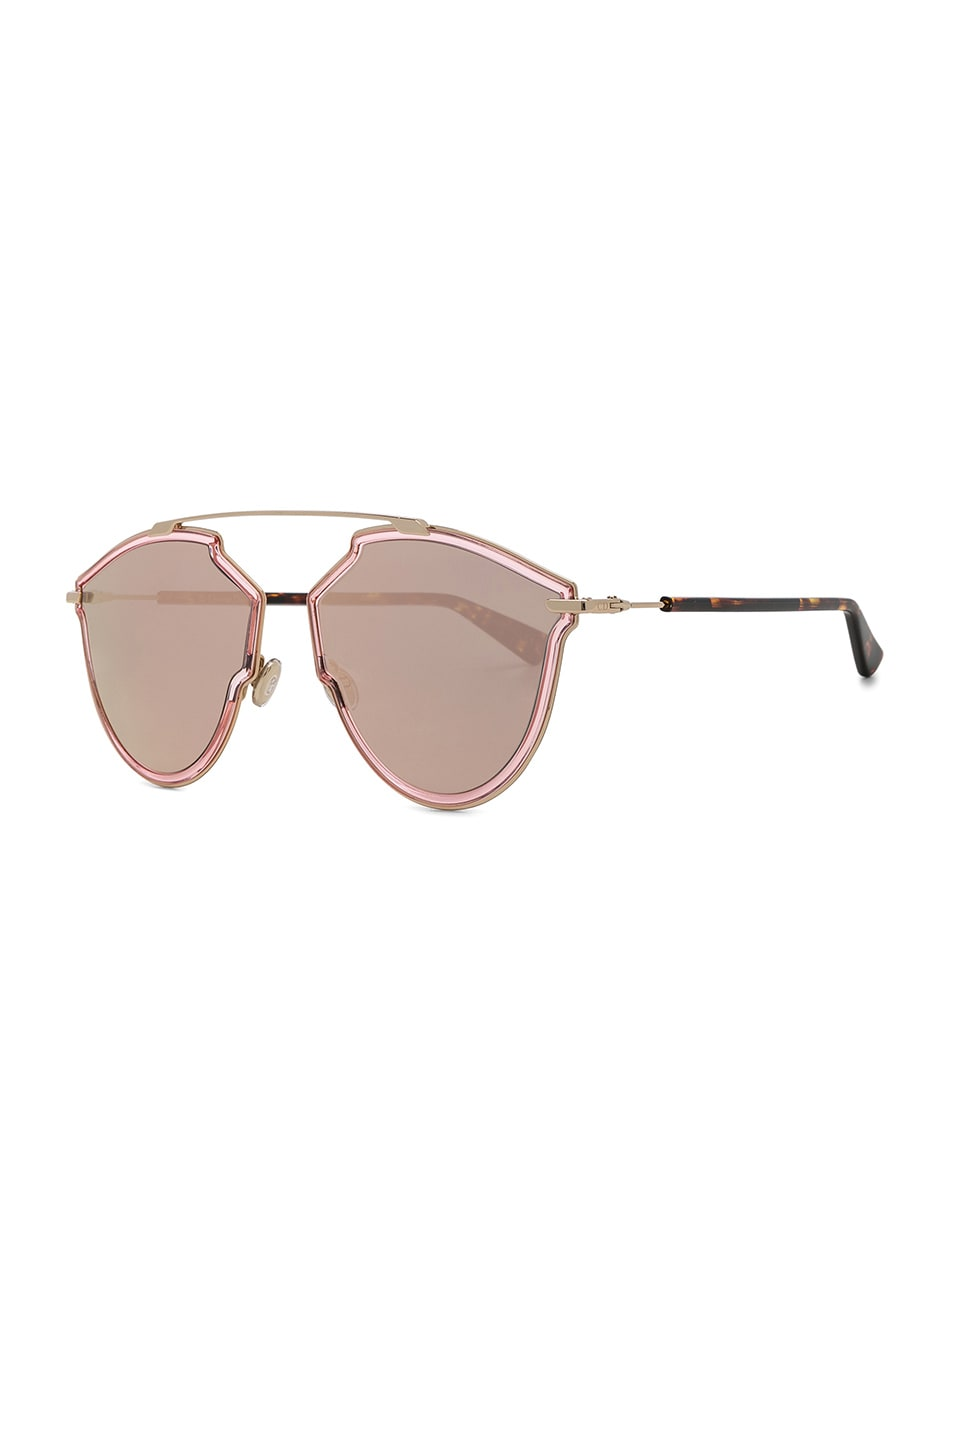 Dior So Real Rise Sunglasses In Pink Gold Amp Gray Rose Gold